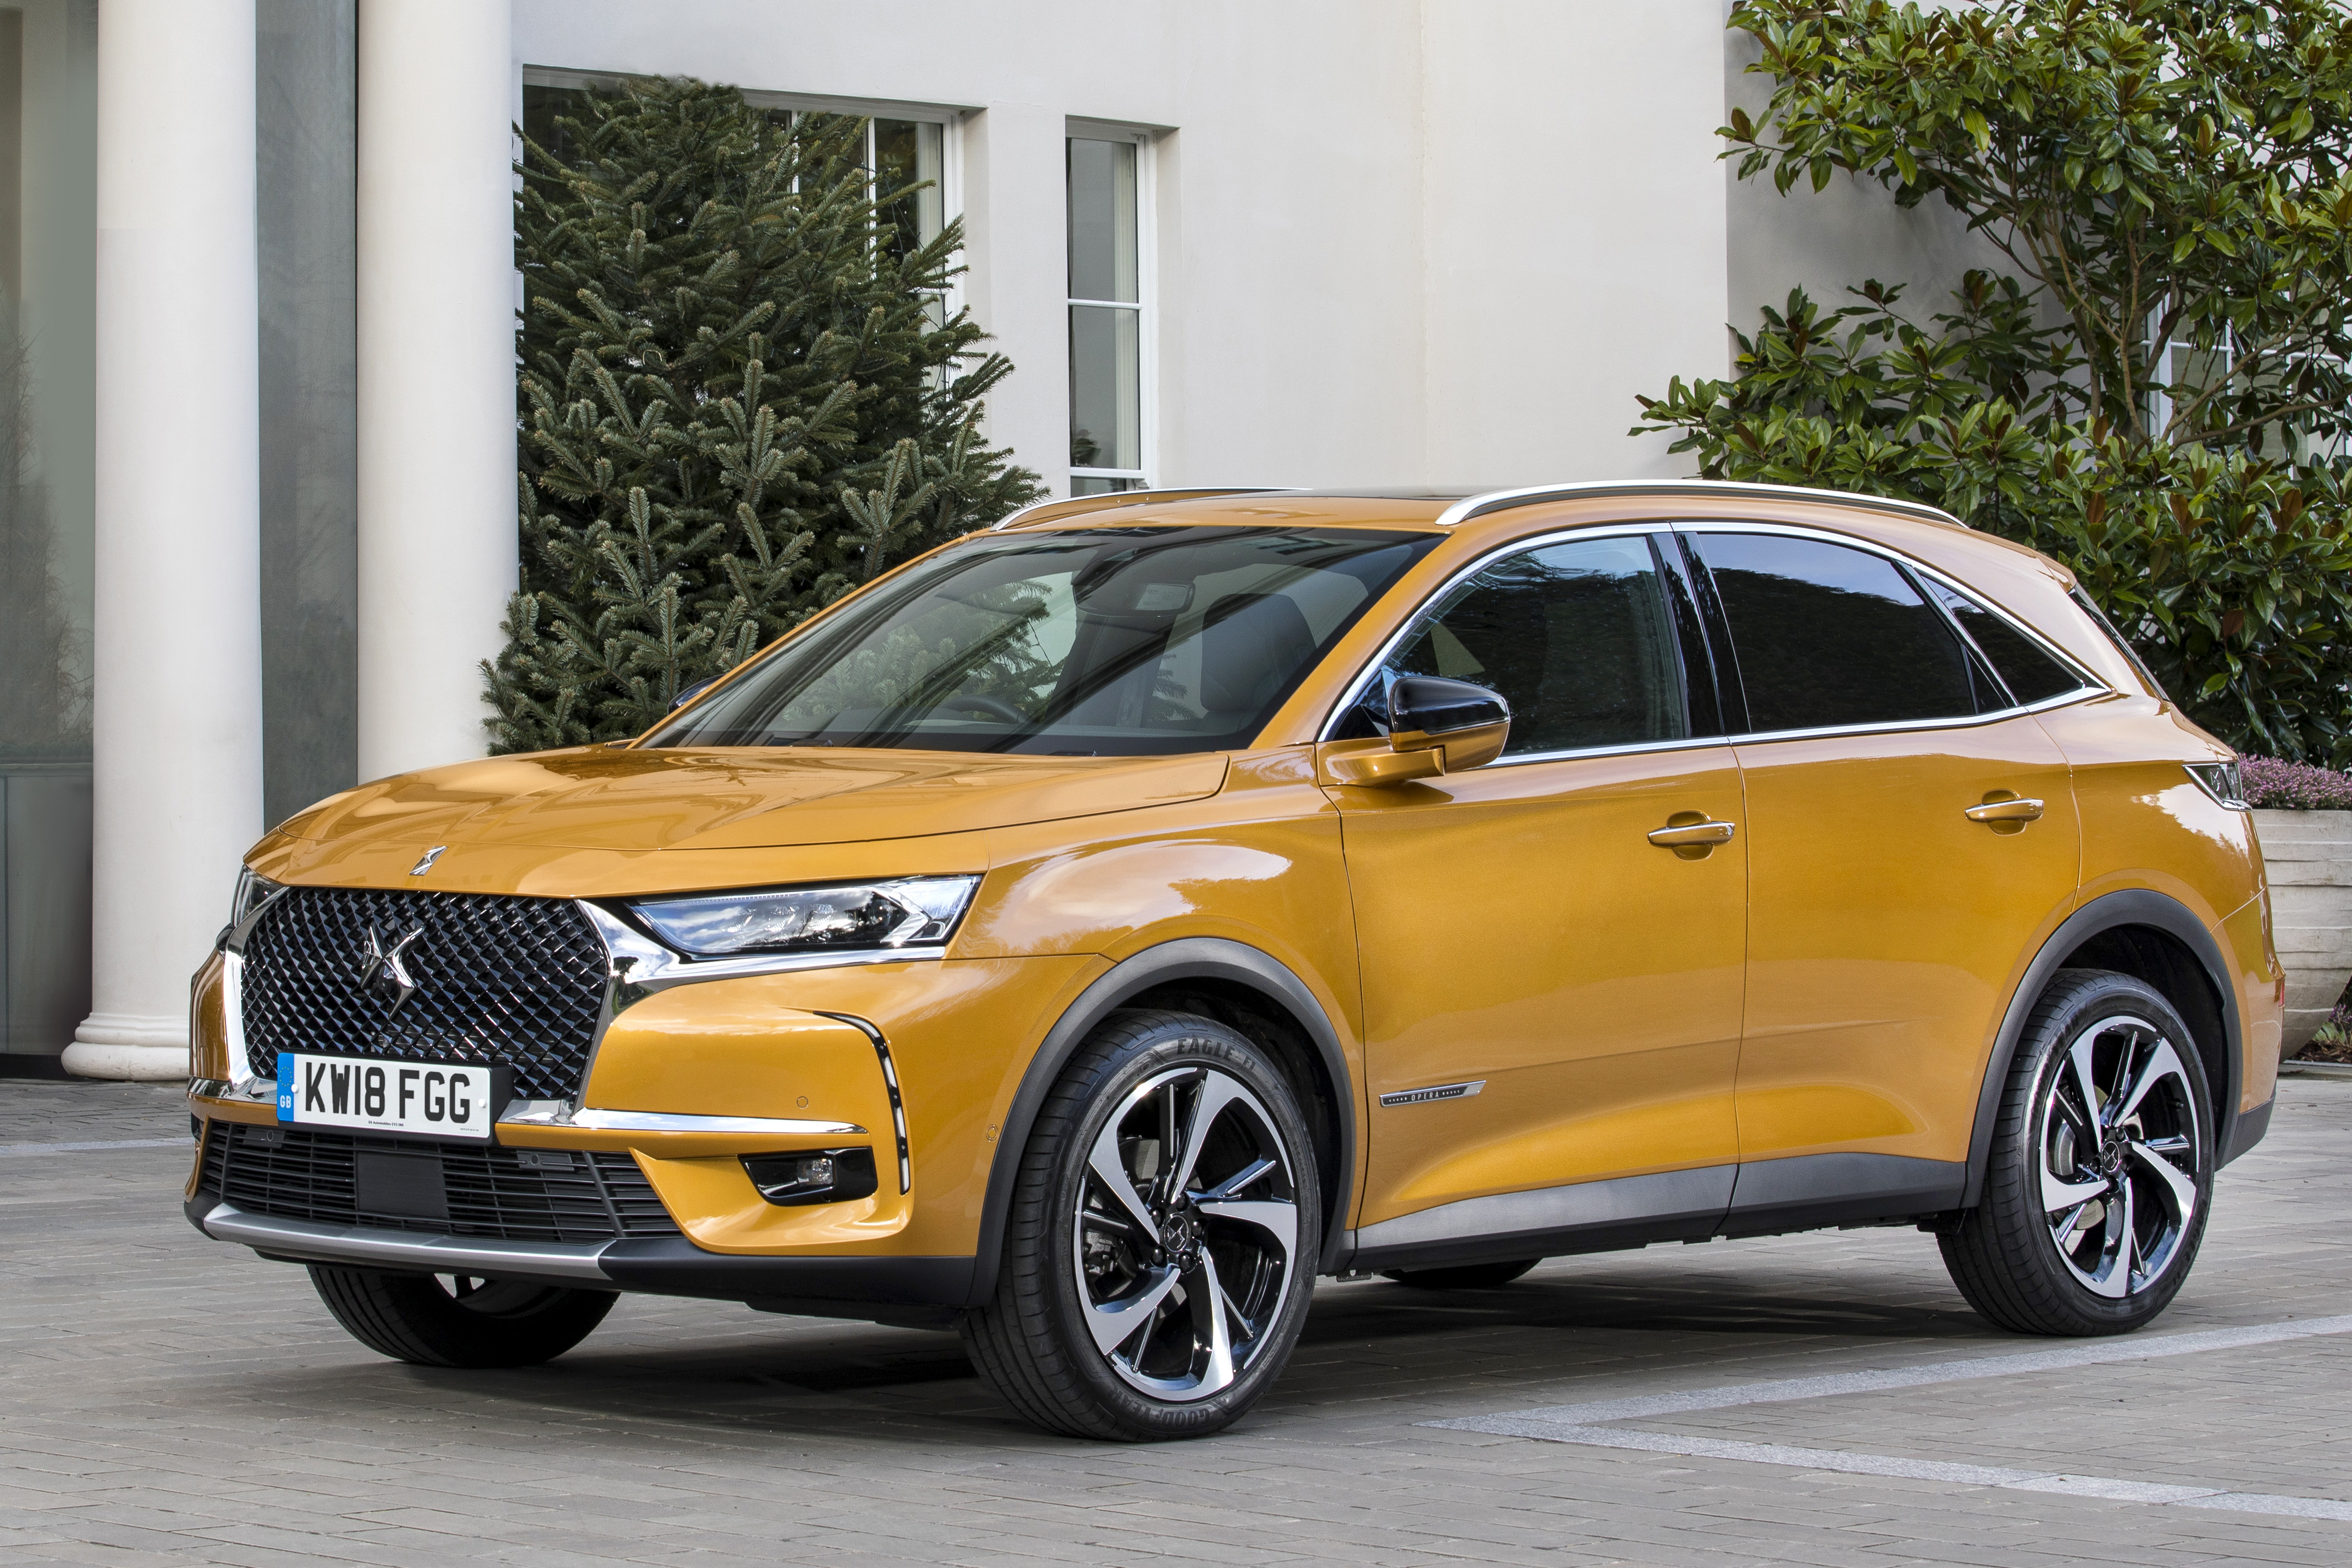 ds7 crossback ultra prestige launch report news by wales express news people before profit. Black Bedroom Furniture Sets. Home Design Ideas